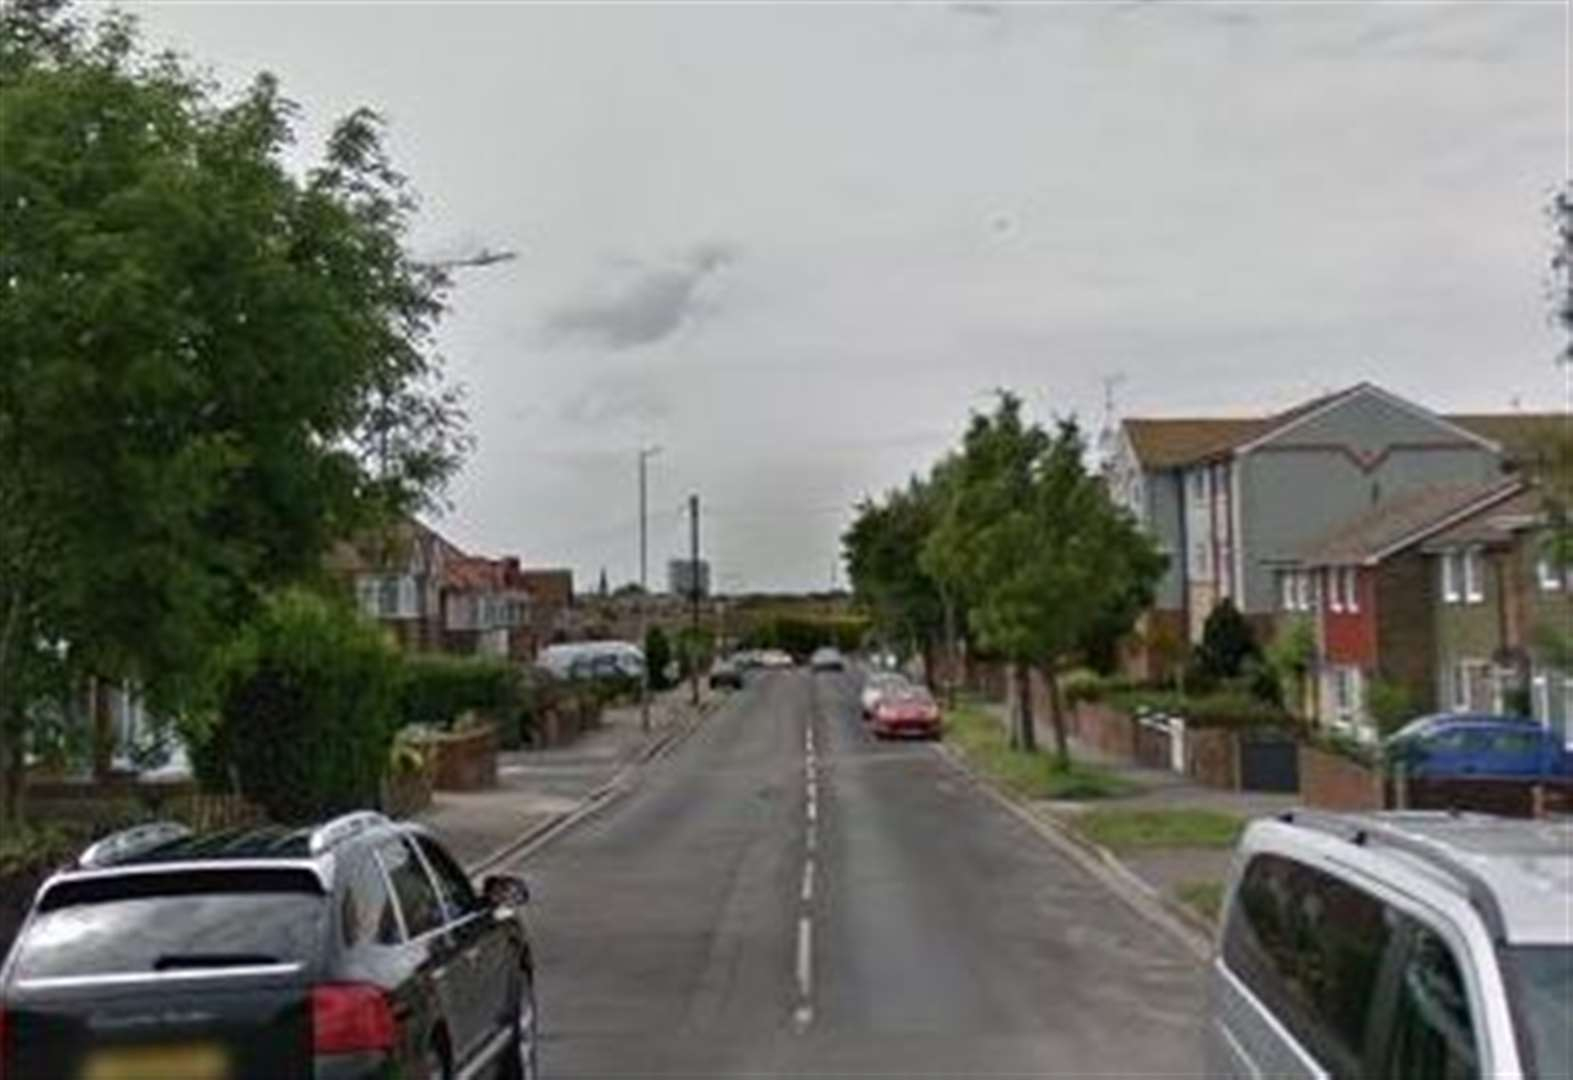 Drink driver's threat to 'slash up' neighbours